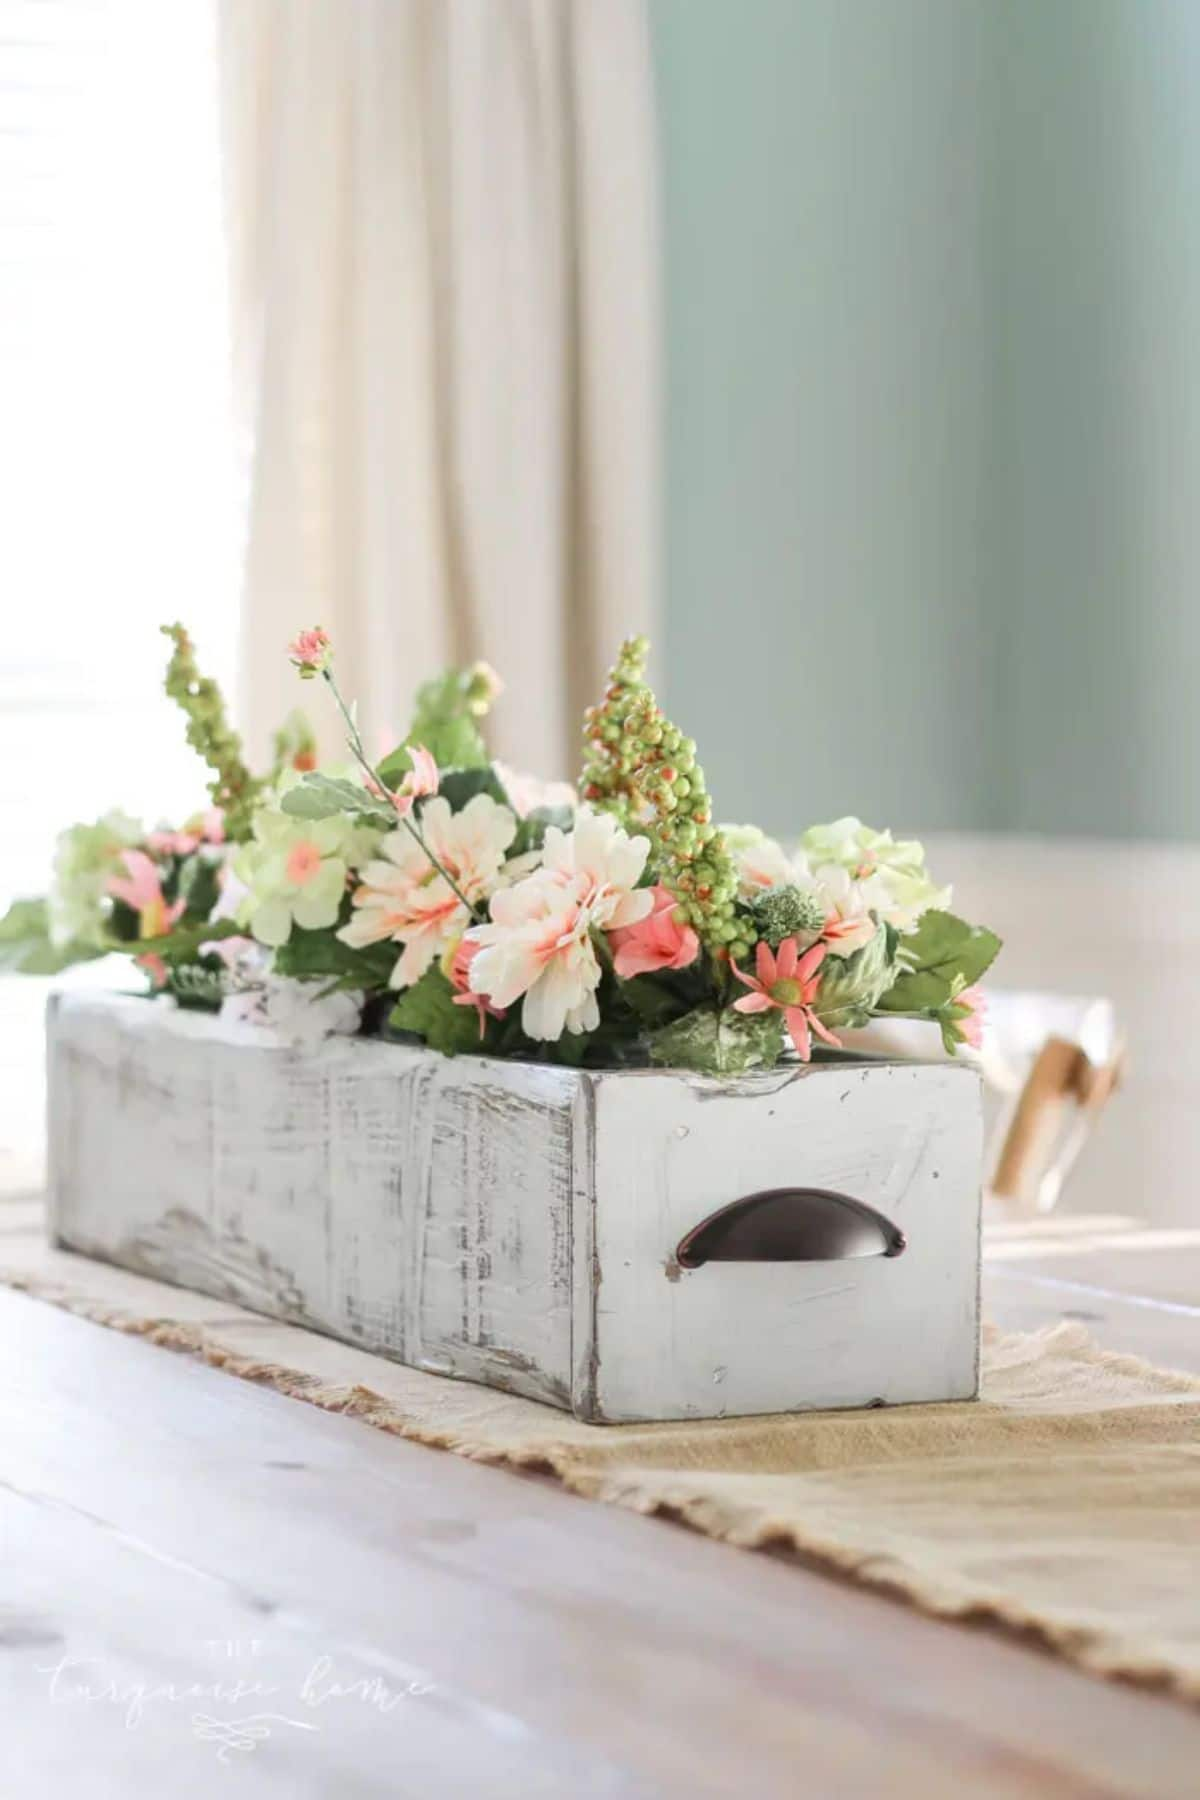 on a wooden table, sitting on top of a table runner is a shabby chic painted crate filled with pin kand white flowers